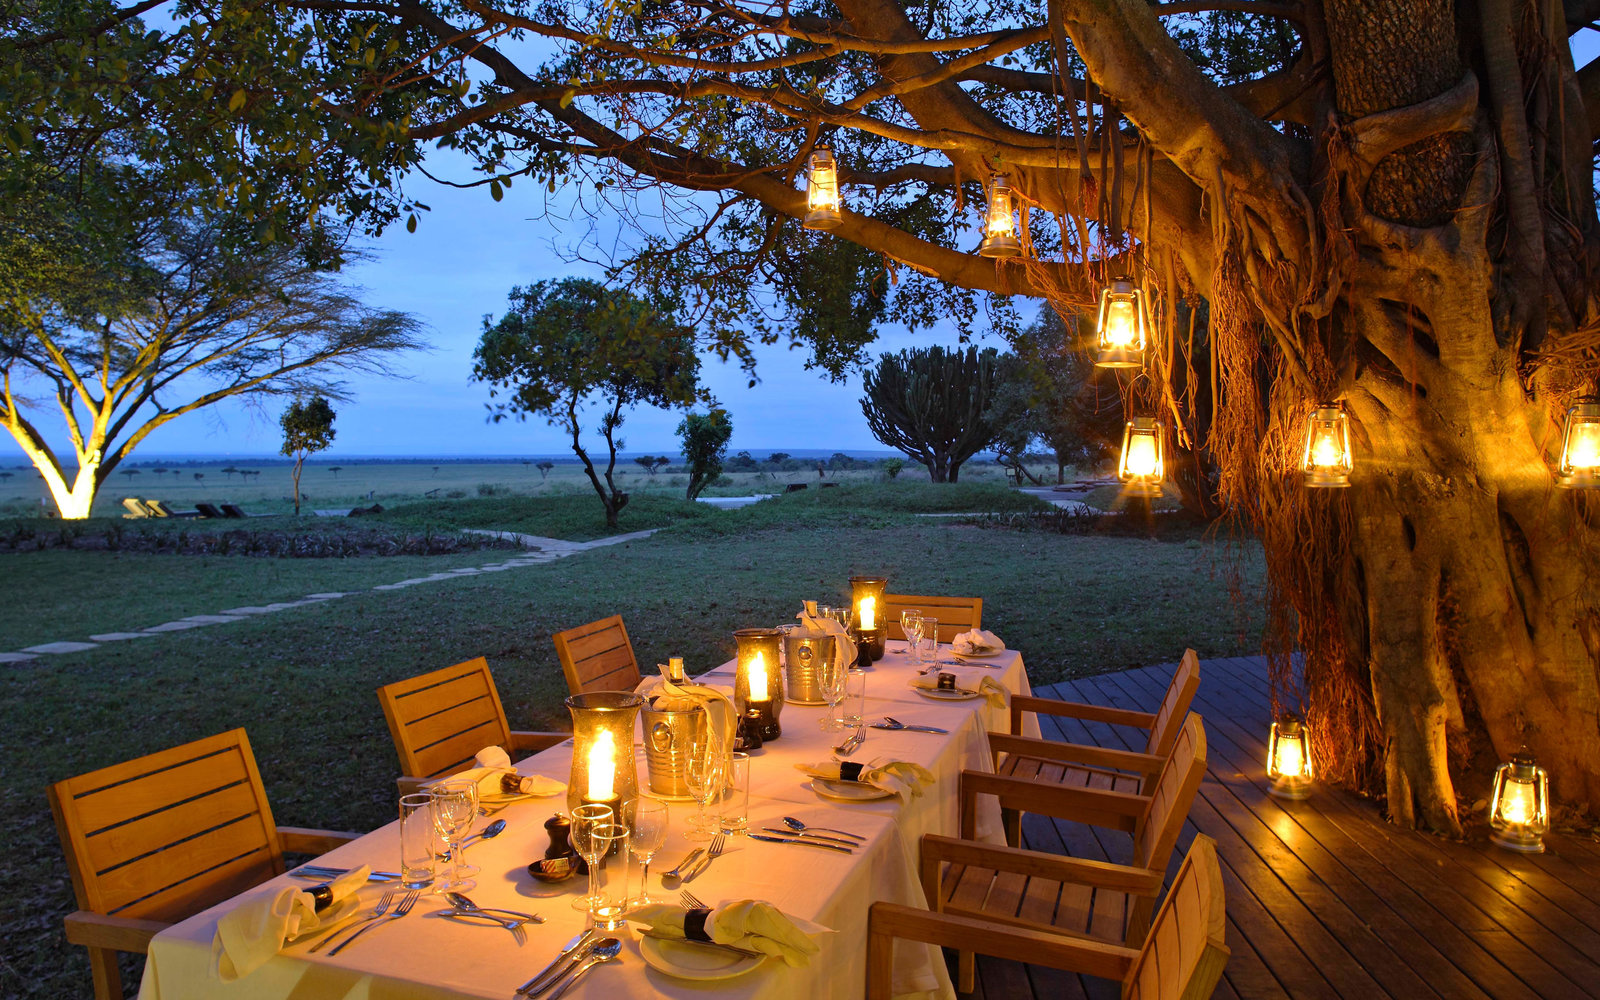 andBeyond Kichwa Tembo Tented Camp